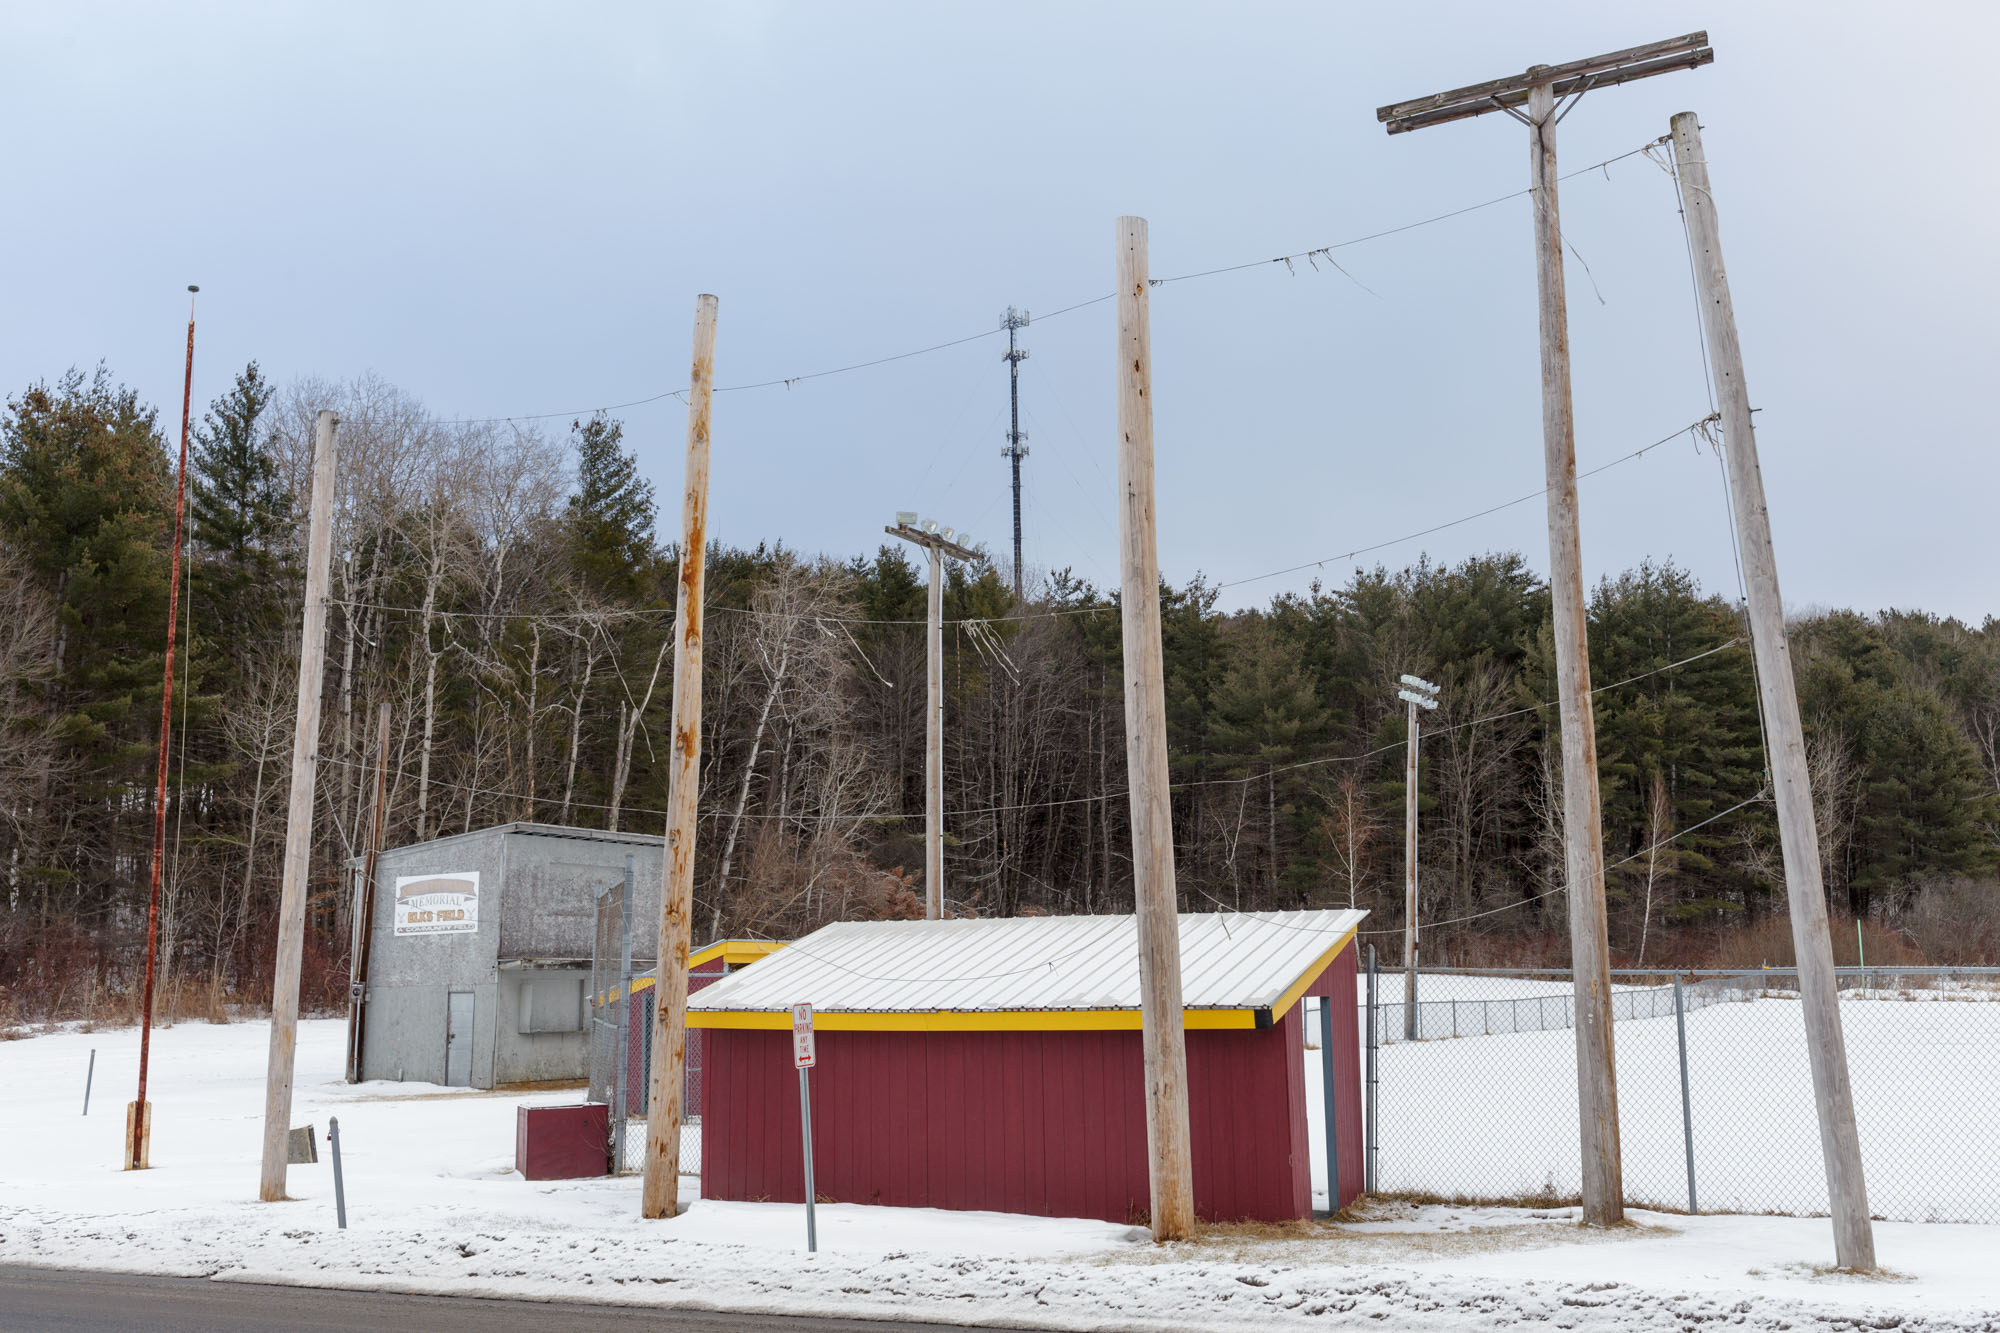 Posts Around Ball Field in Winter